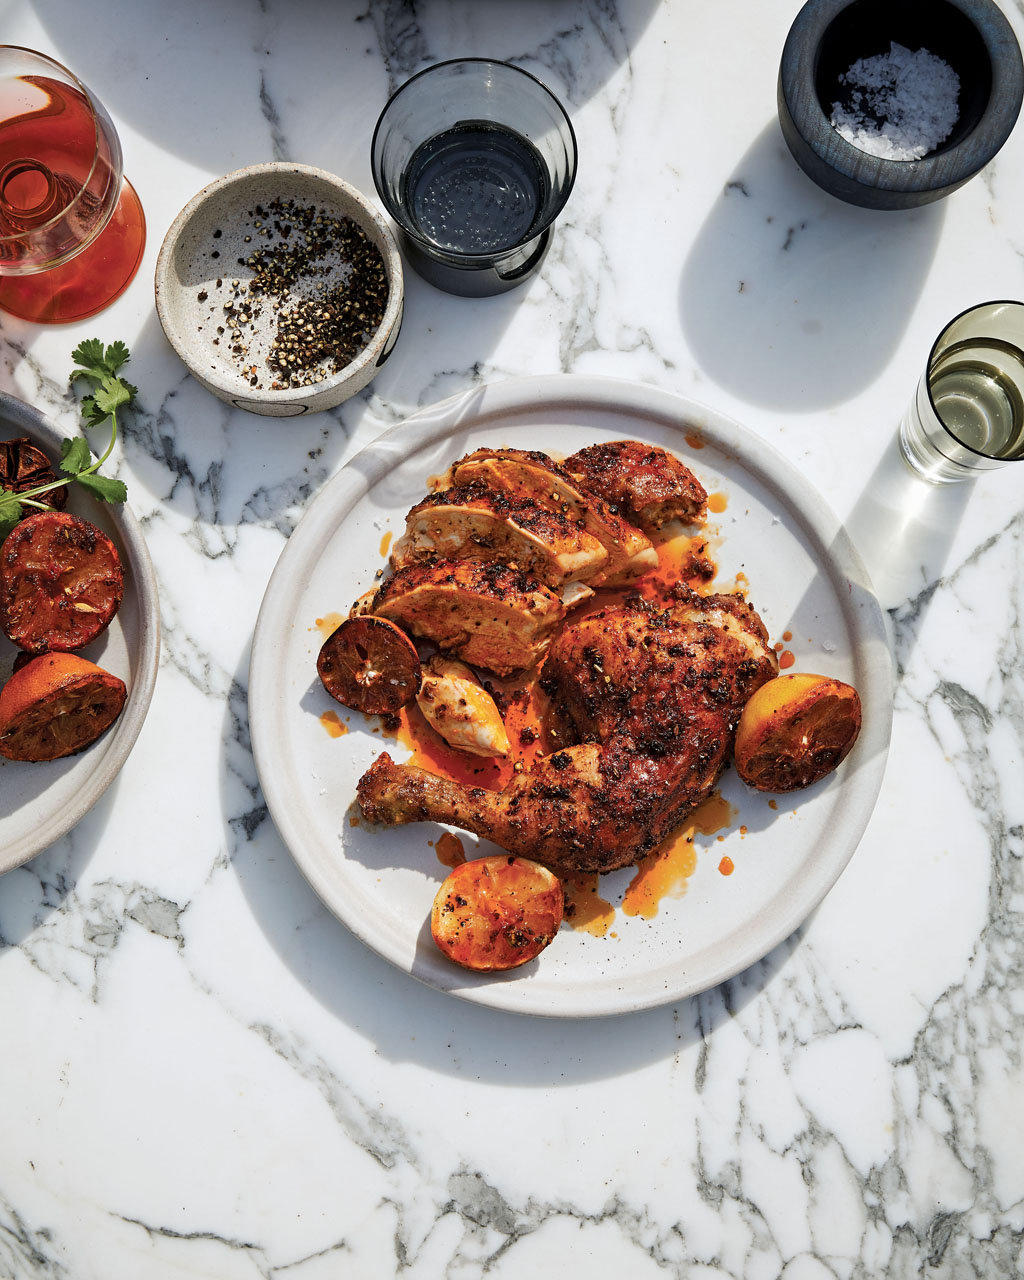 chicken covered in spice with wedges of lemon